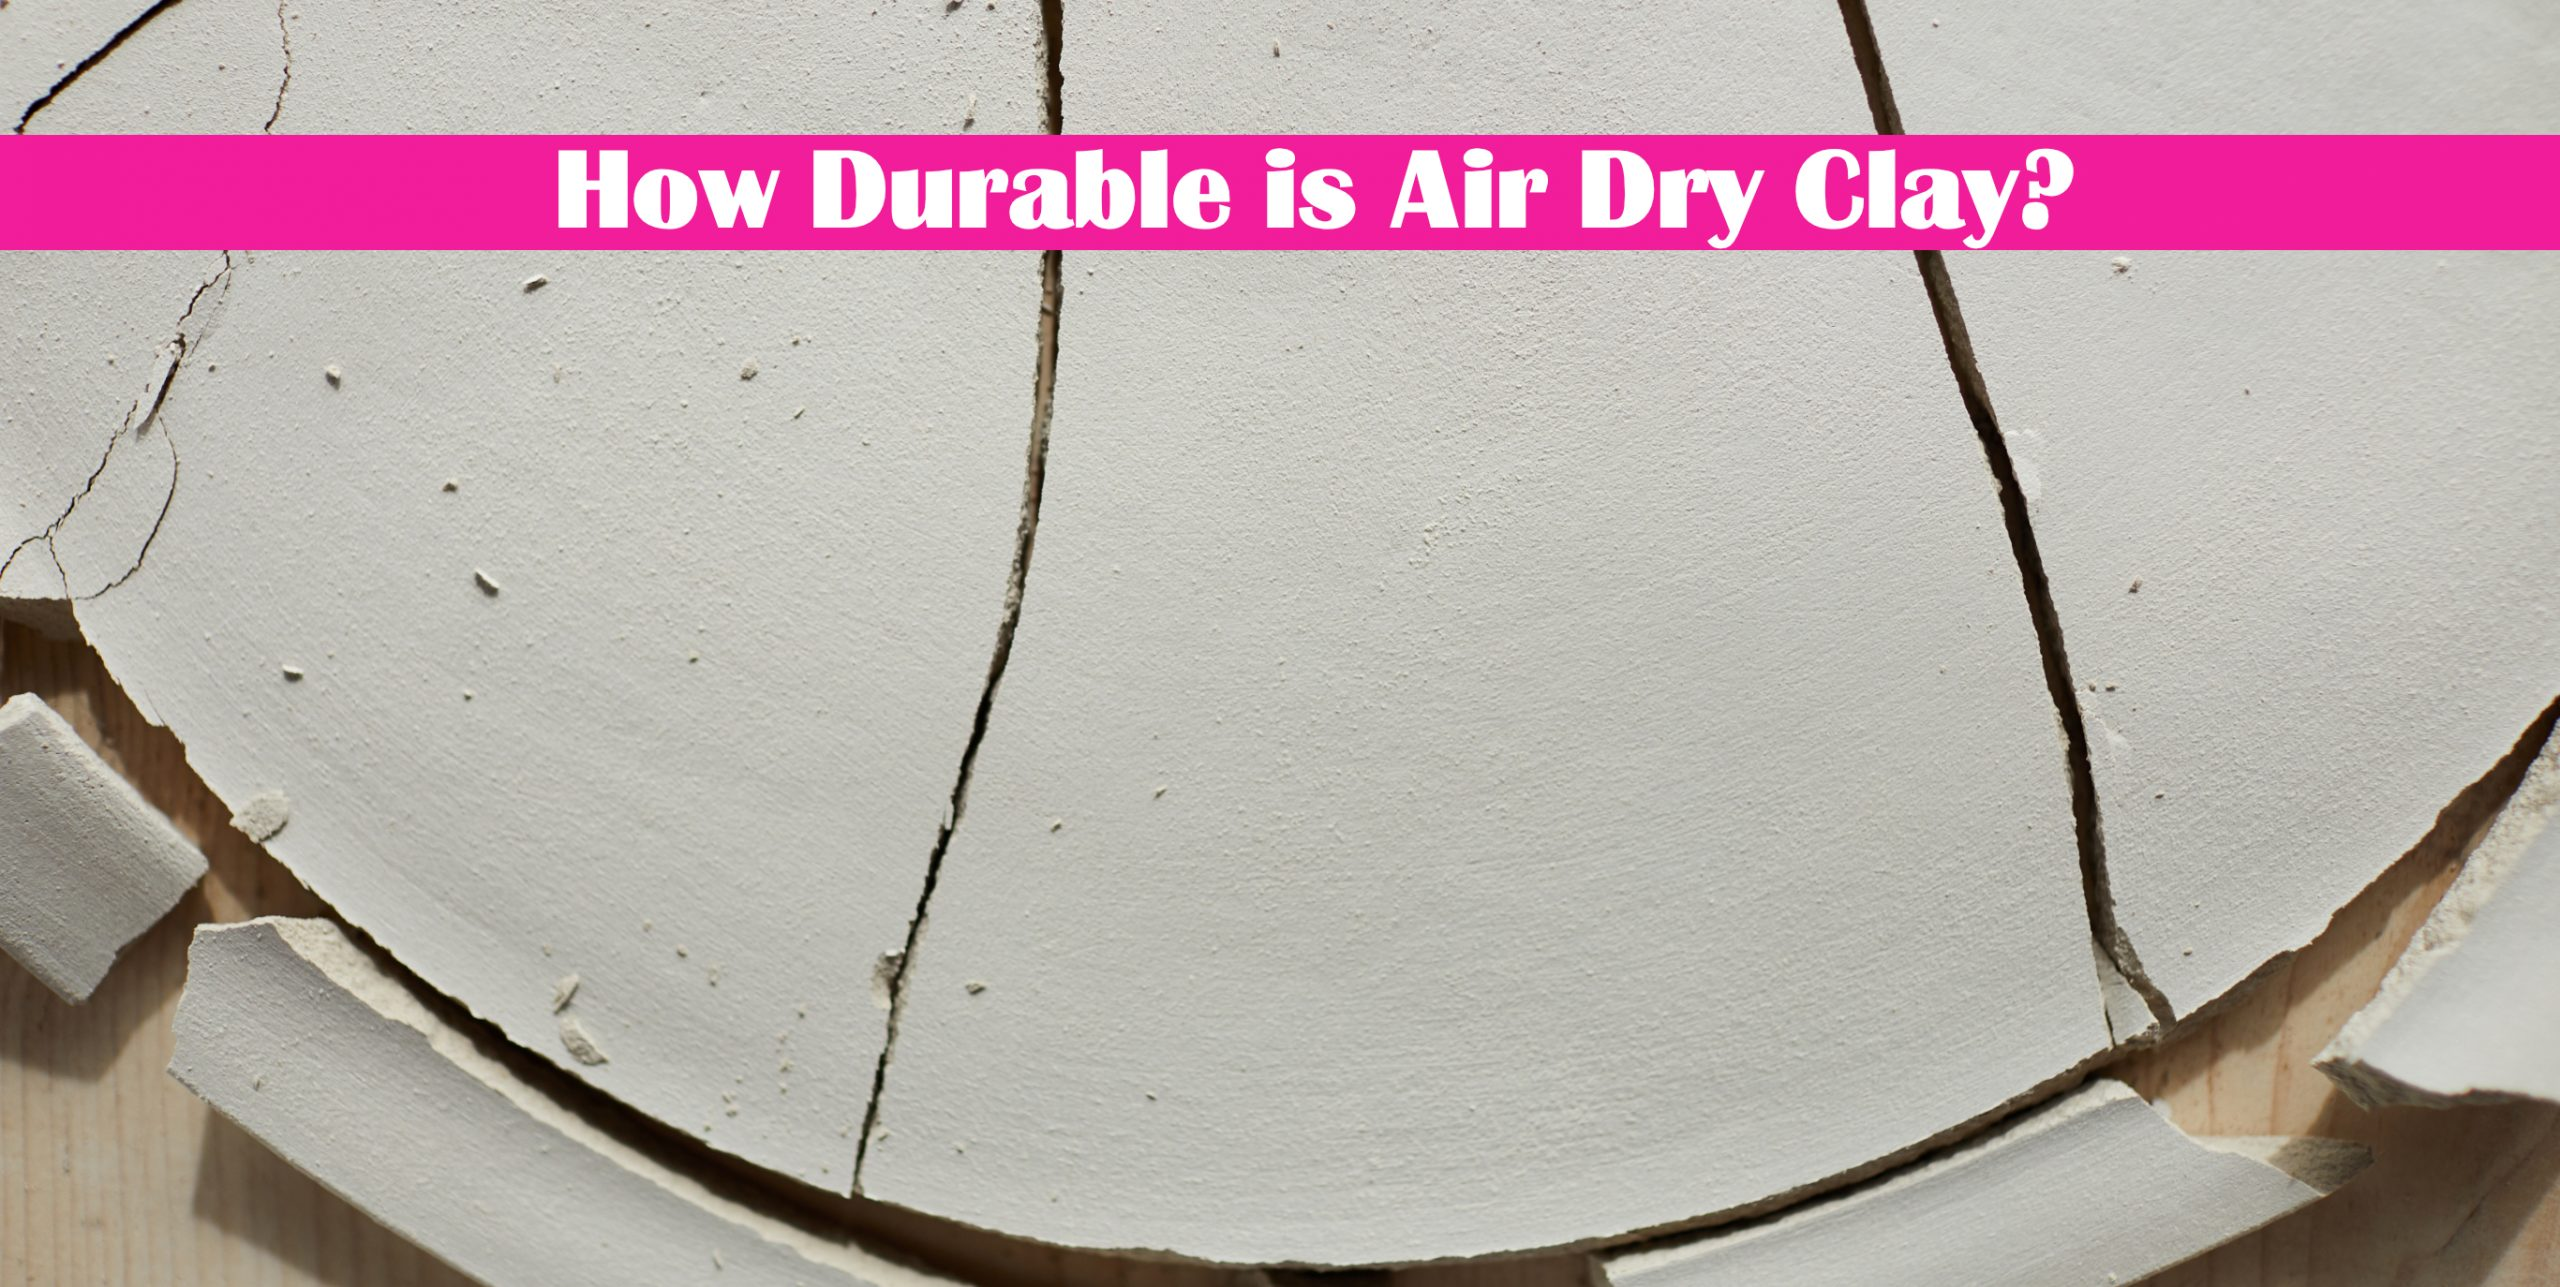 How Durable is Air Dry Clay?